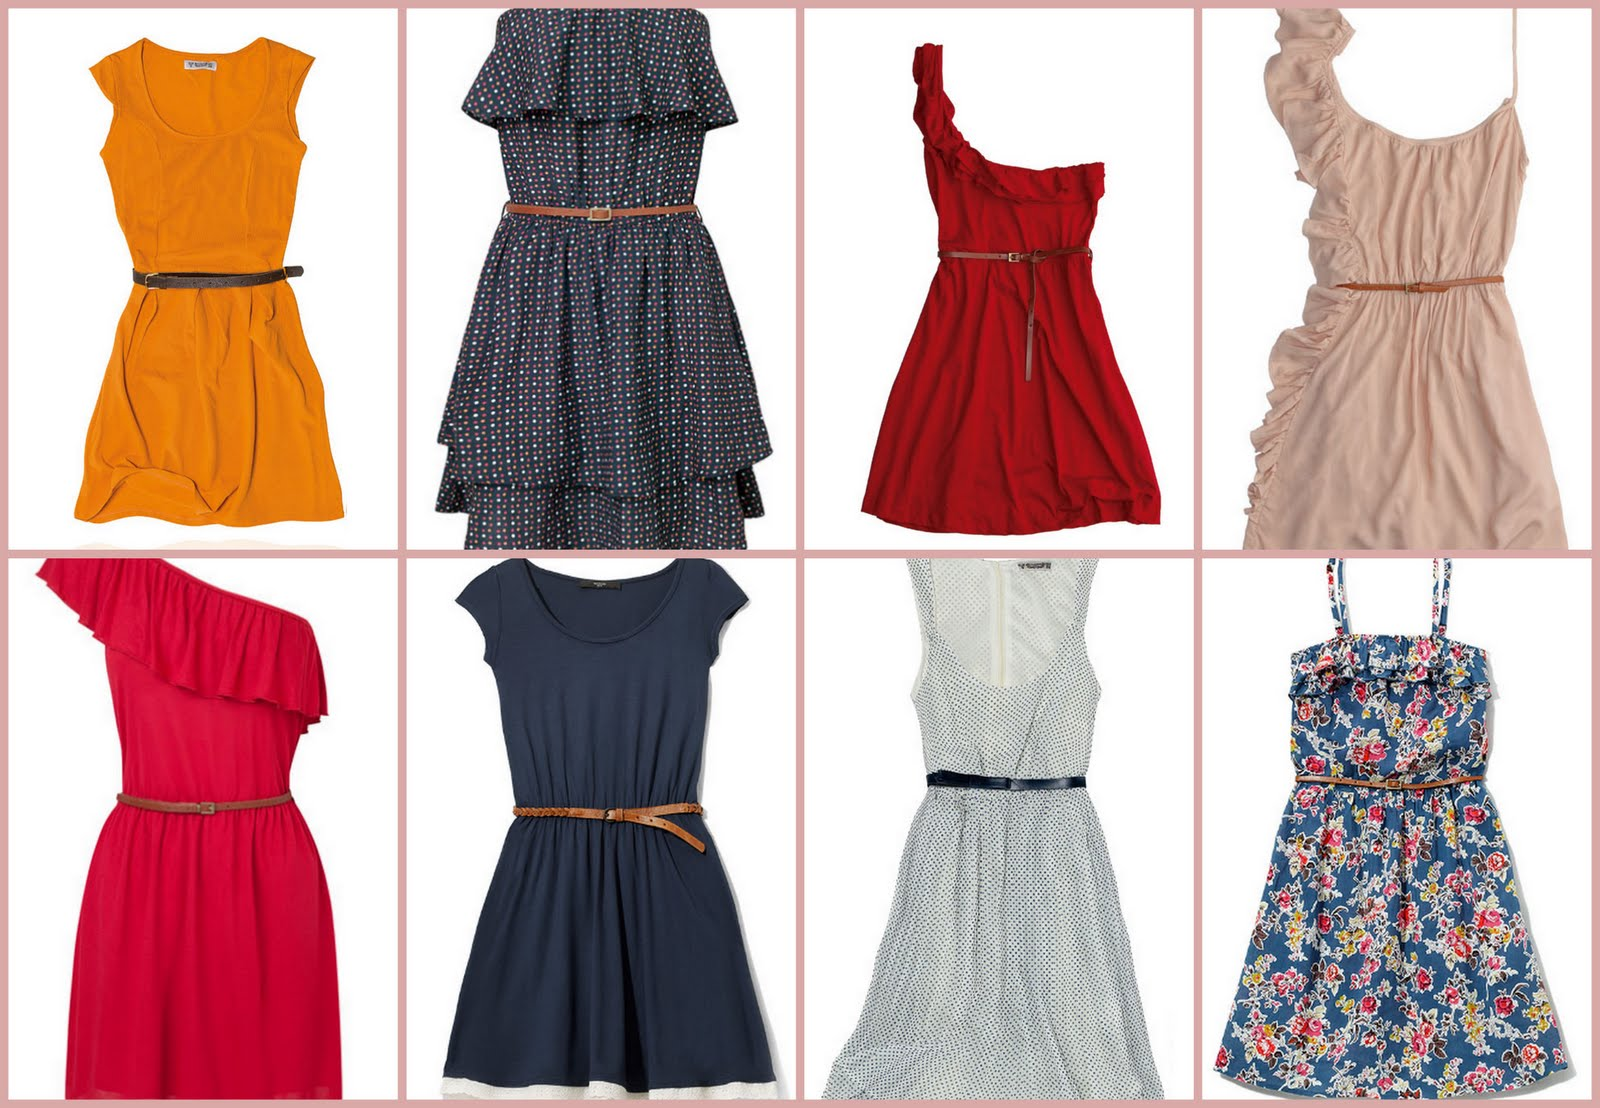 Belts and Dresses